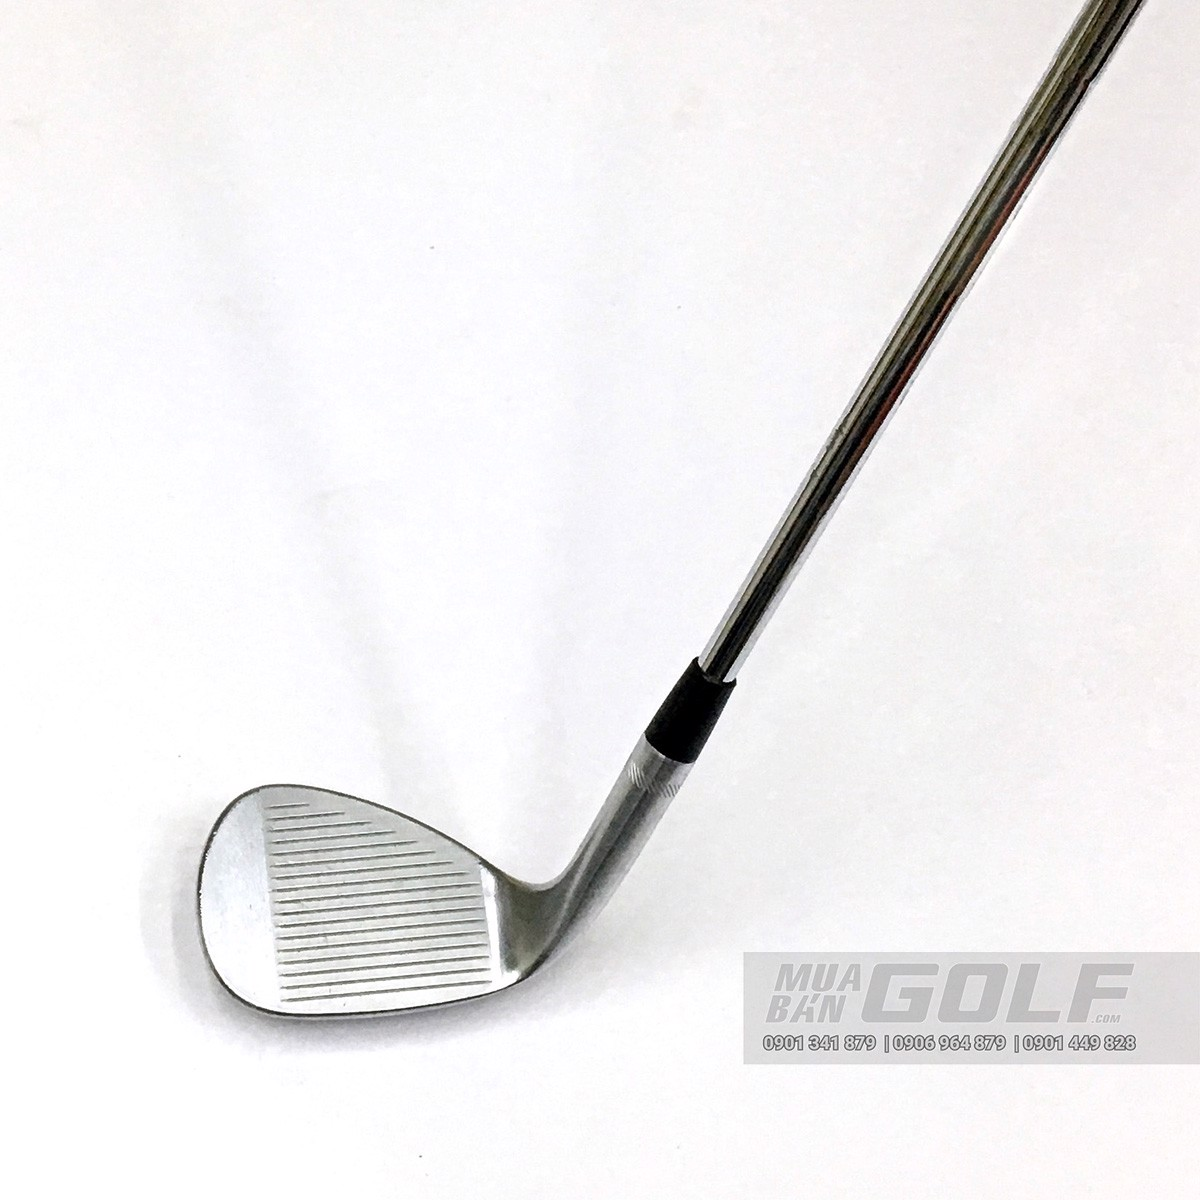 Gậy golf Wedge cũ TITLEIST BV SM6 K GRIND LOFT 58 12 SCW FT7